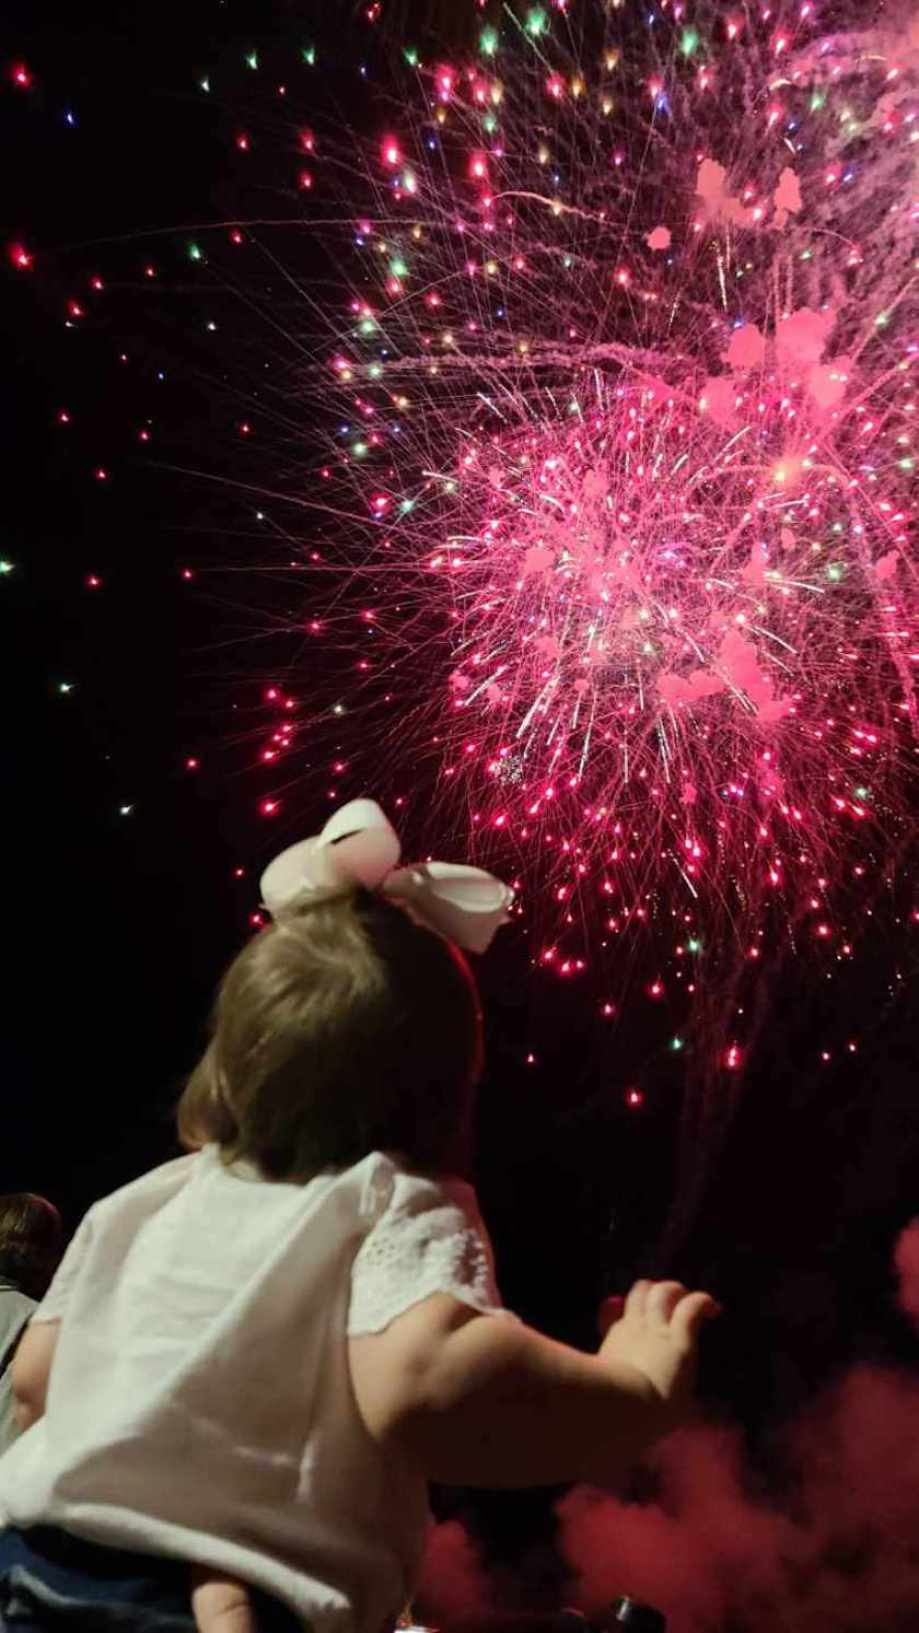 A small child looking up at pink fireworks in a night sky